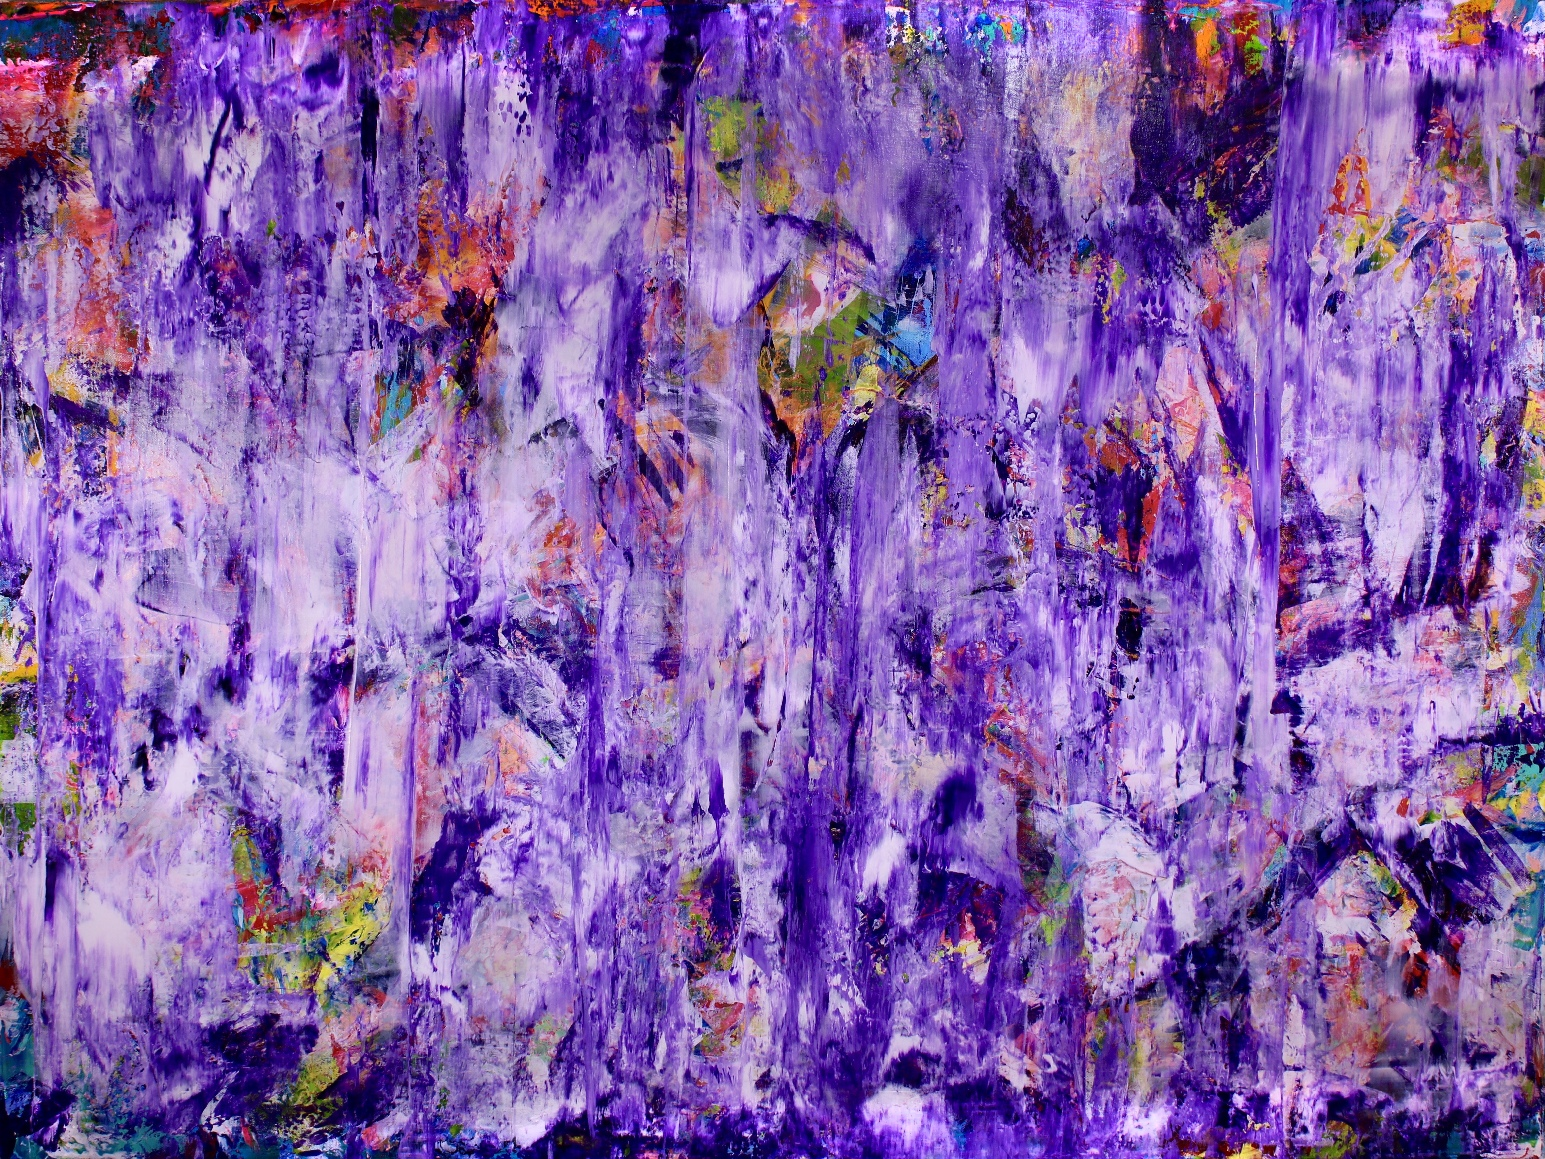 Purple Spectra (2018) Acrylic painting by Nestor Toro